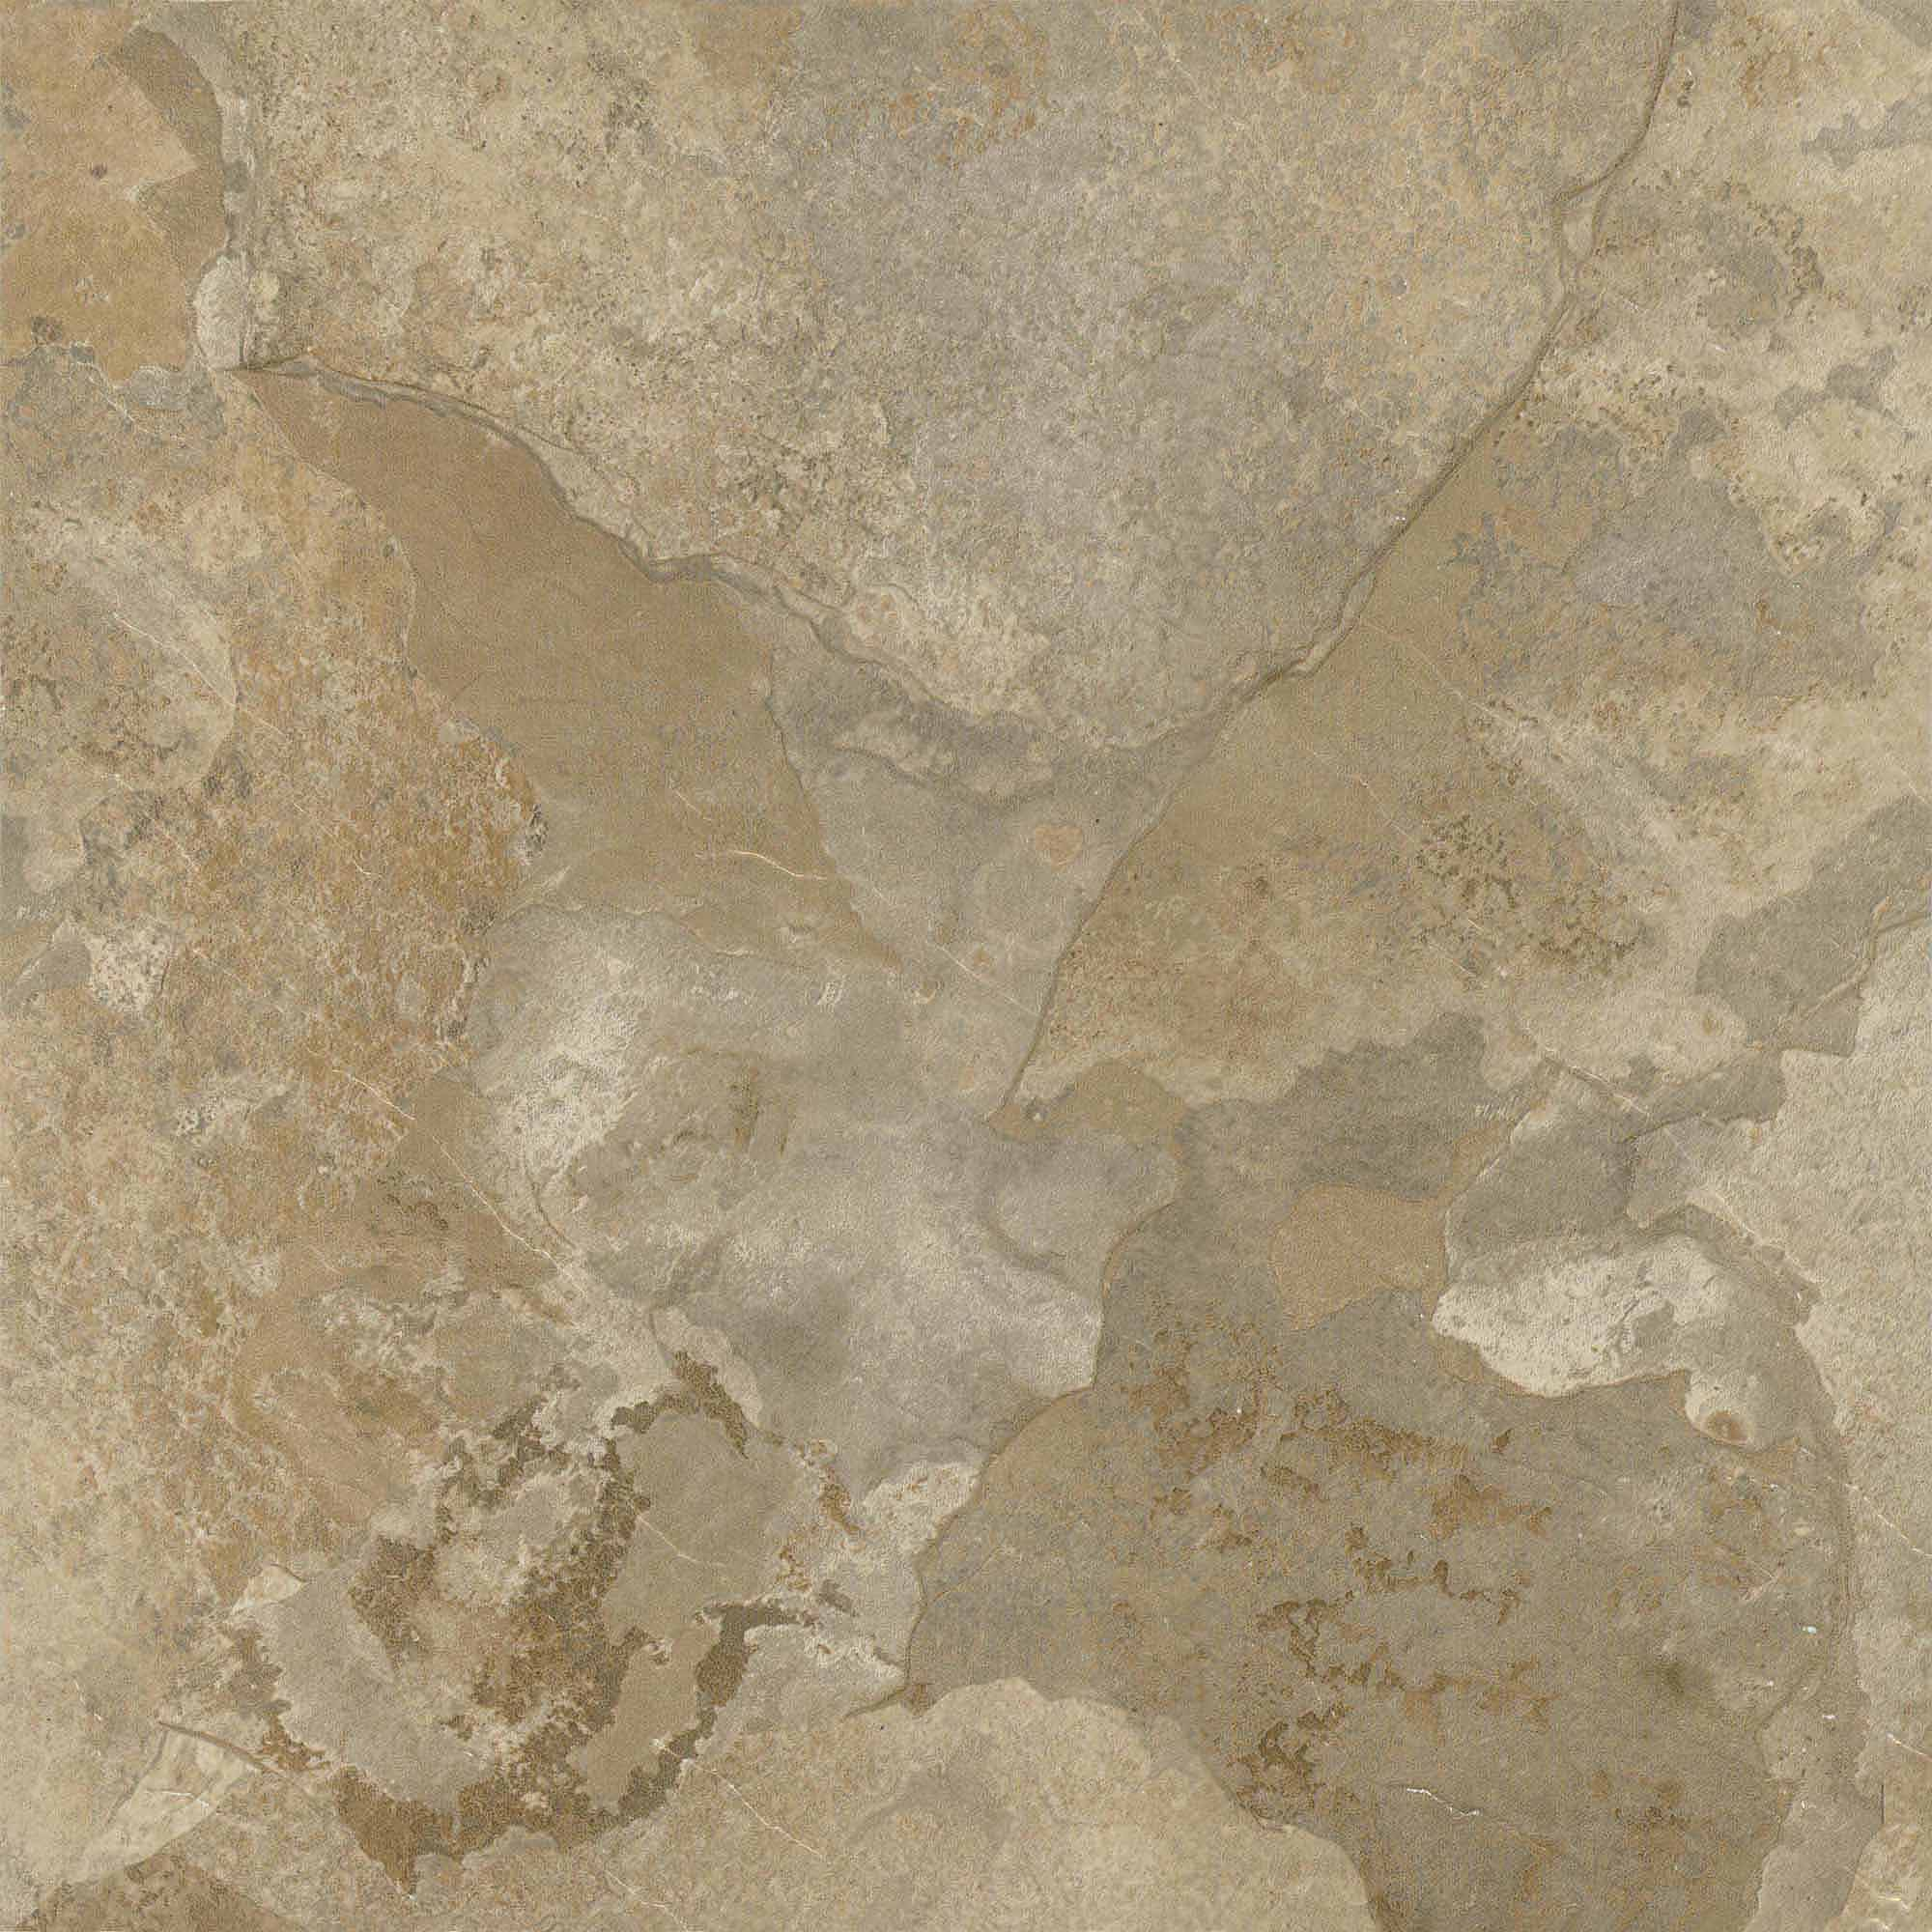 NEXUS Light Slate Marble 12x12 Self Adhesive Vinyl Floor Tile - 20 Tiles/20 Sq.Ft.